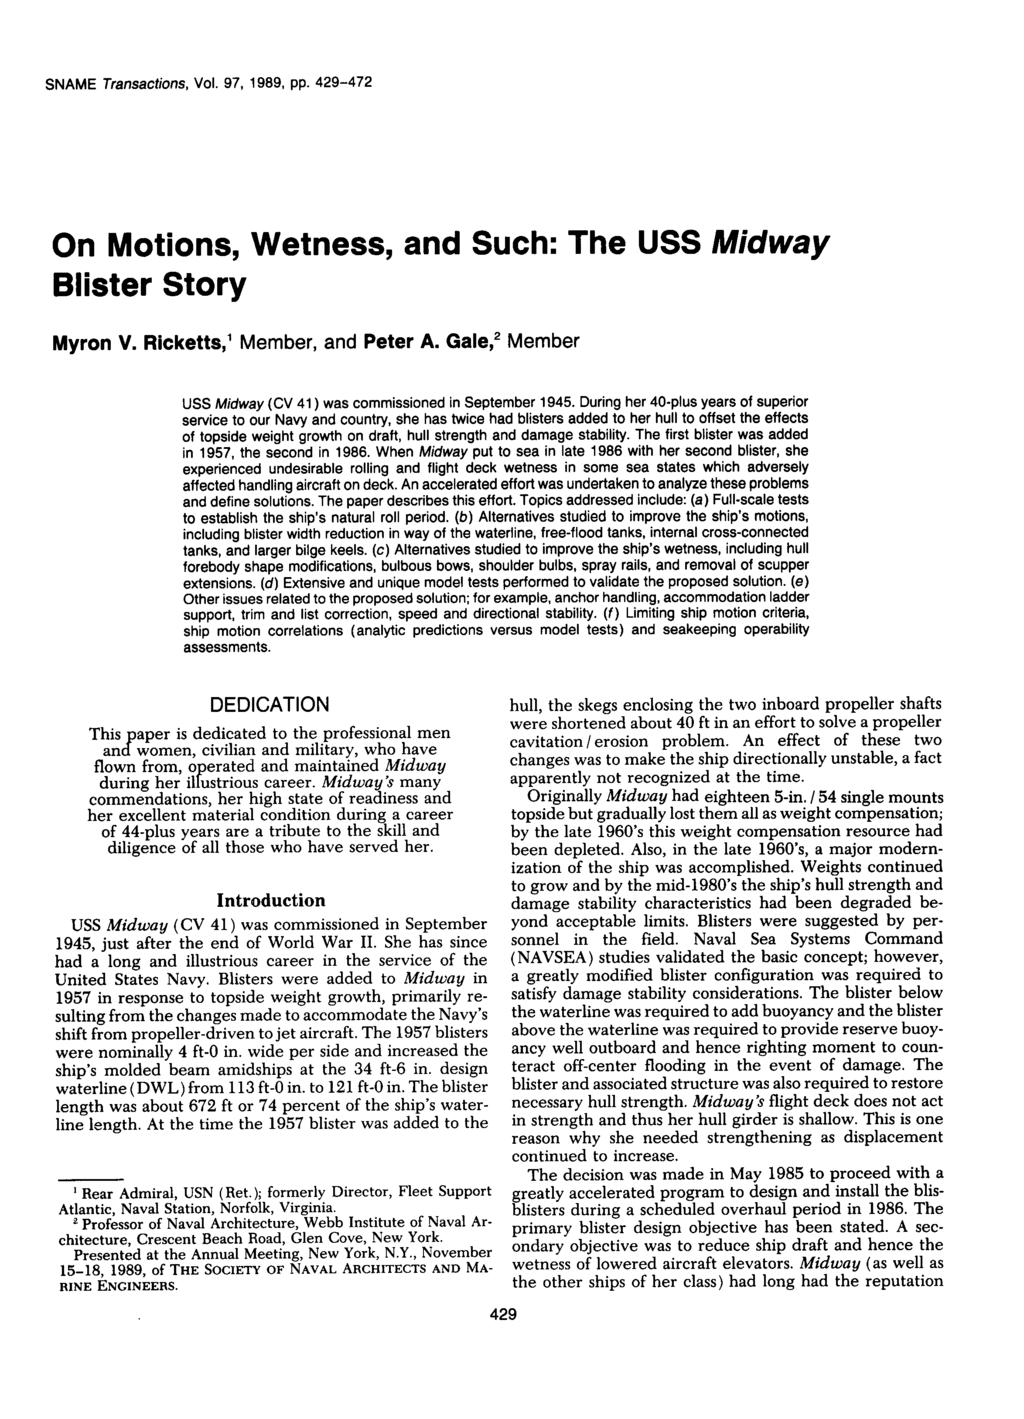 SNAME Transactions, Vol. 97, 1989, pp. 429-472 On Motions, Wetness, and Such: The USS Midway Blister Story Myron V. Ricketts, 1 Member, and Peter A.